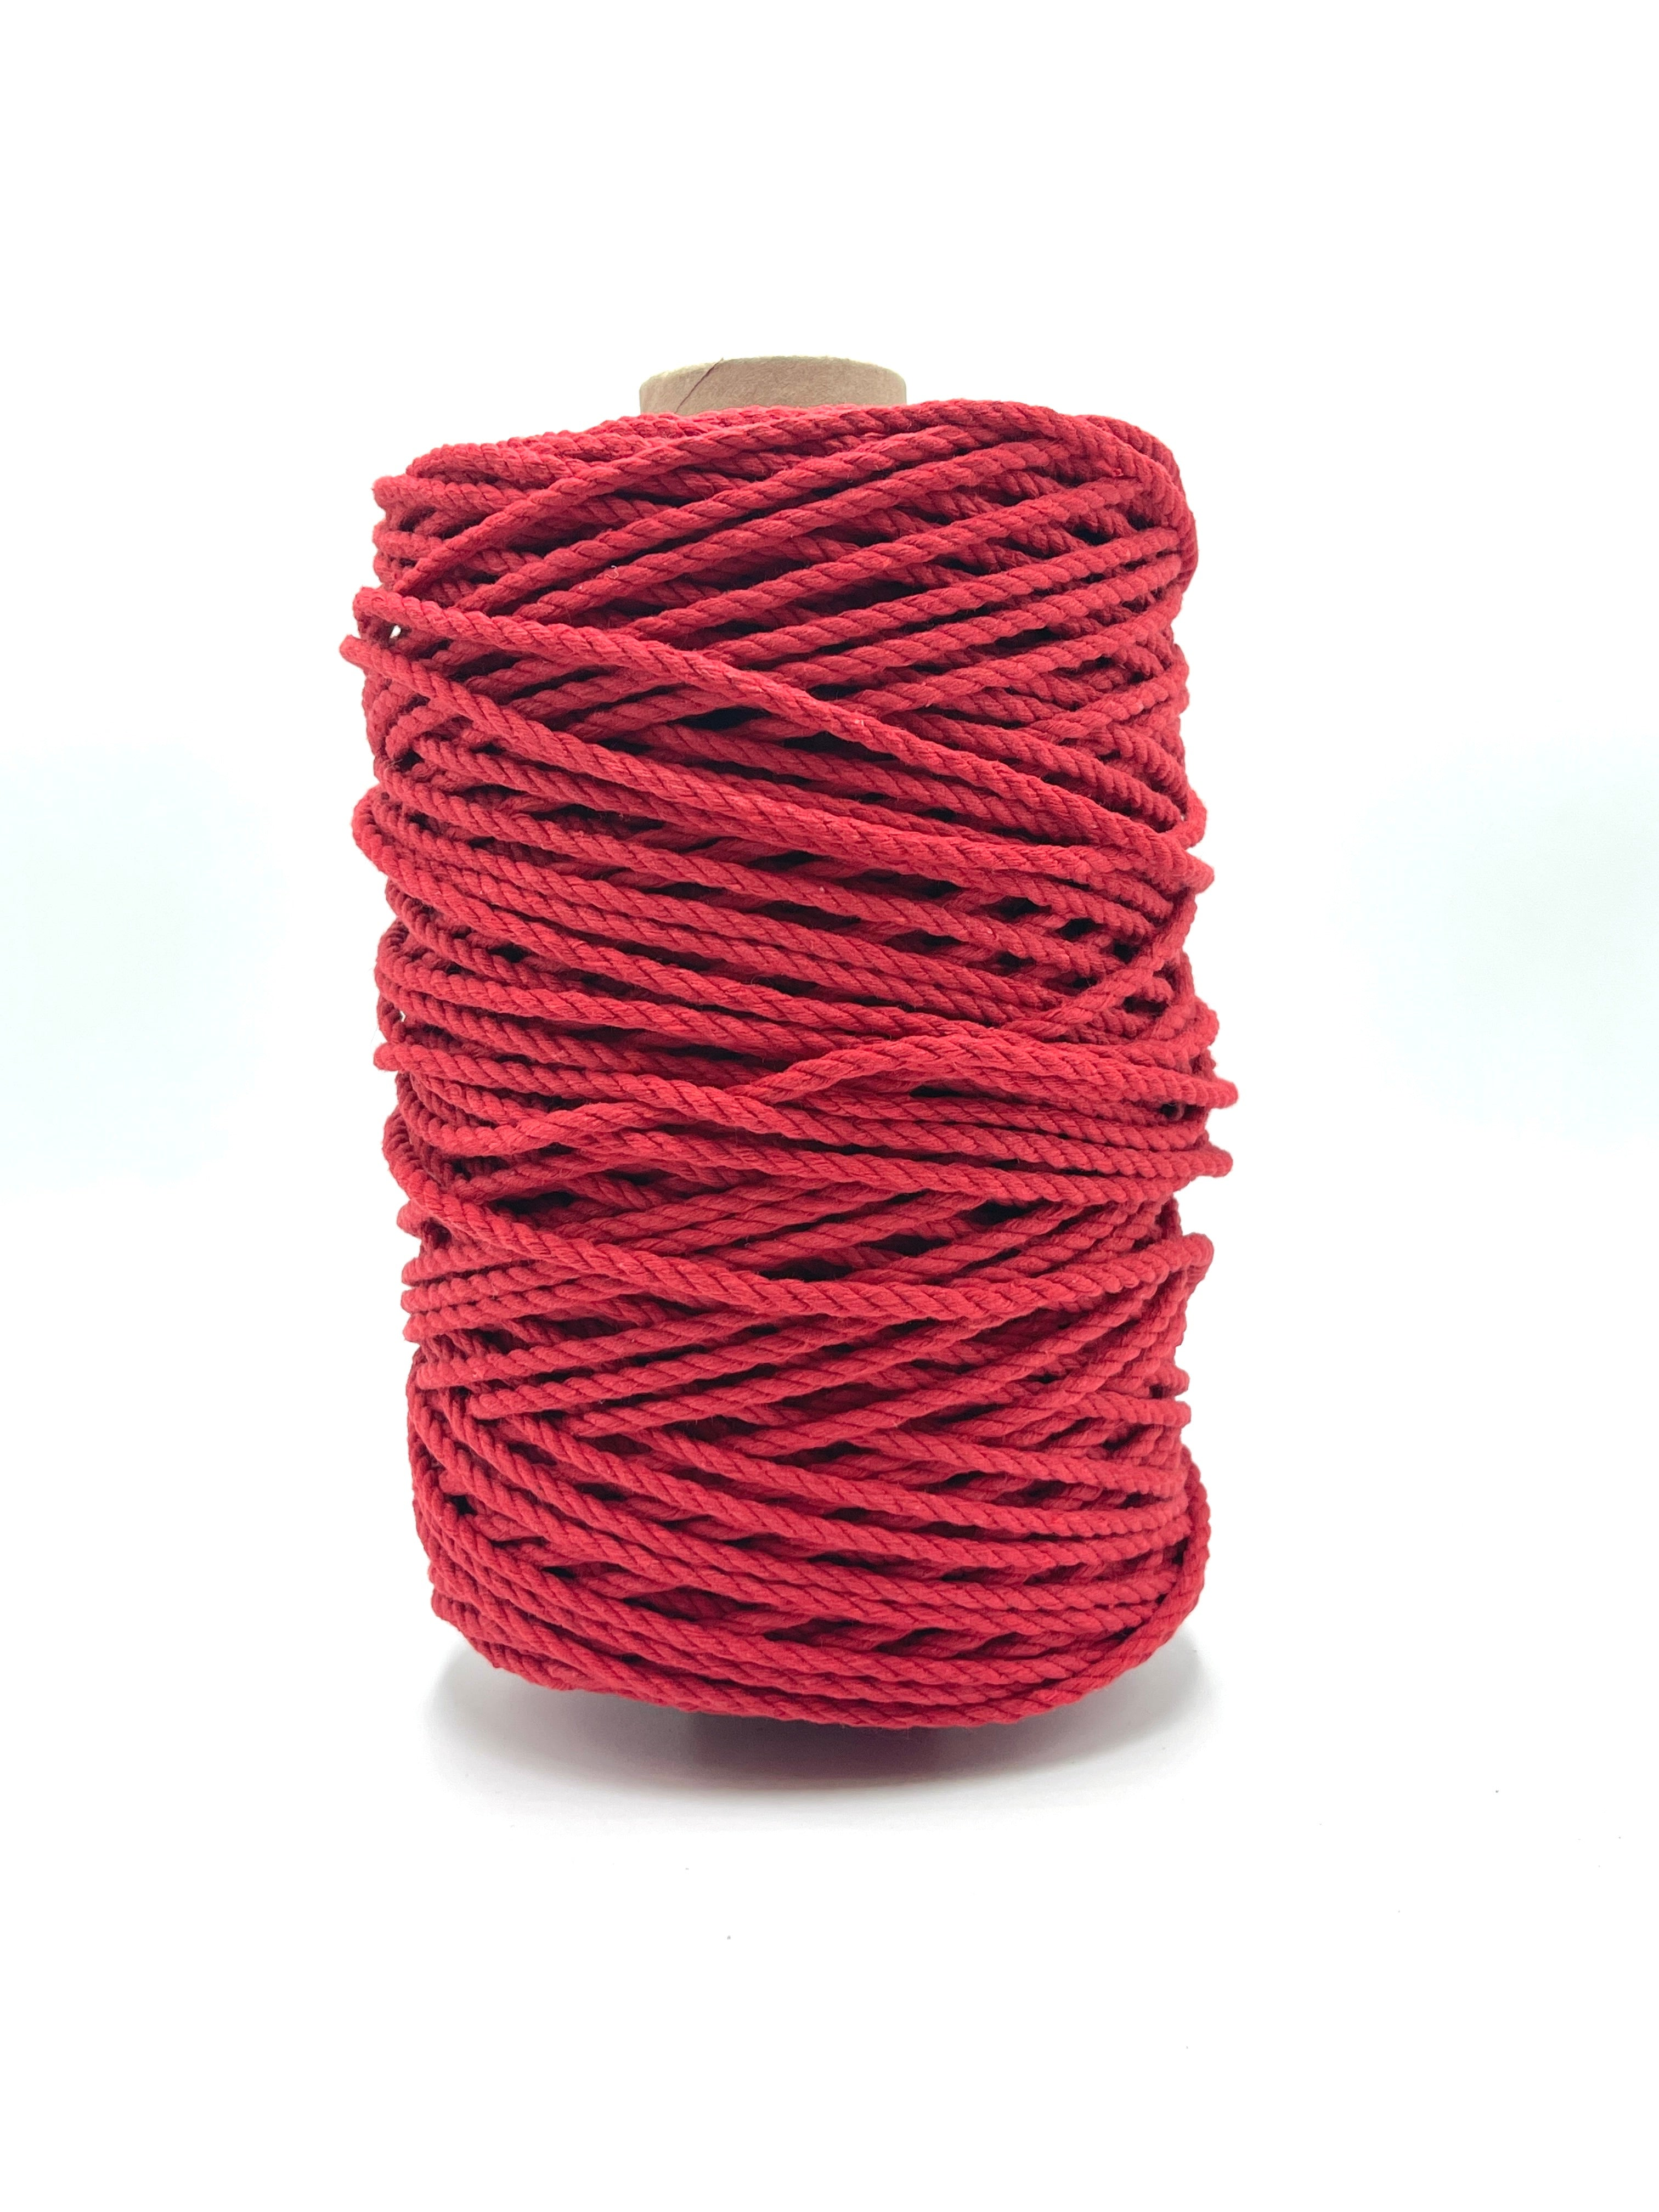 4mm 3ply Rope - Red - 1kg